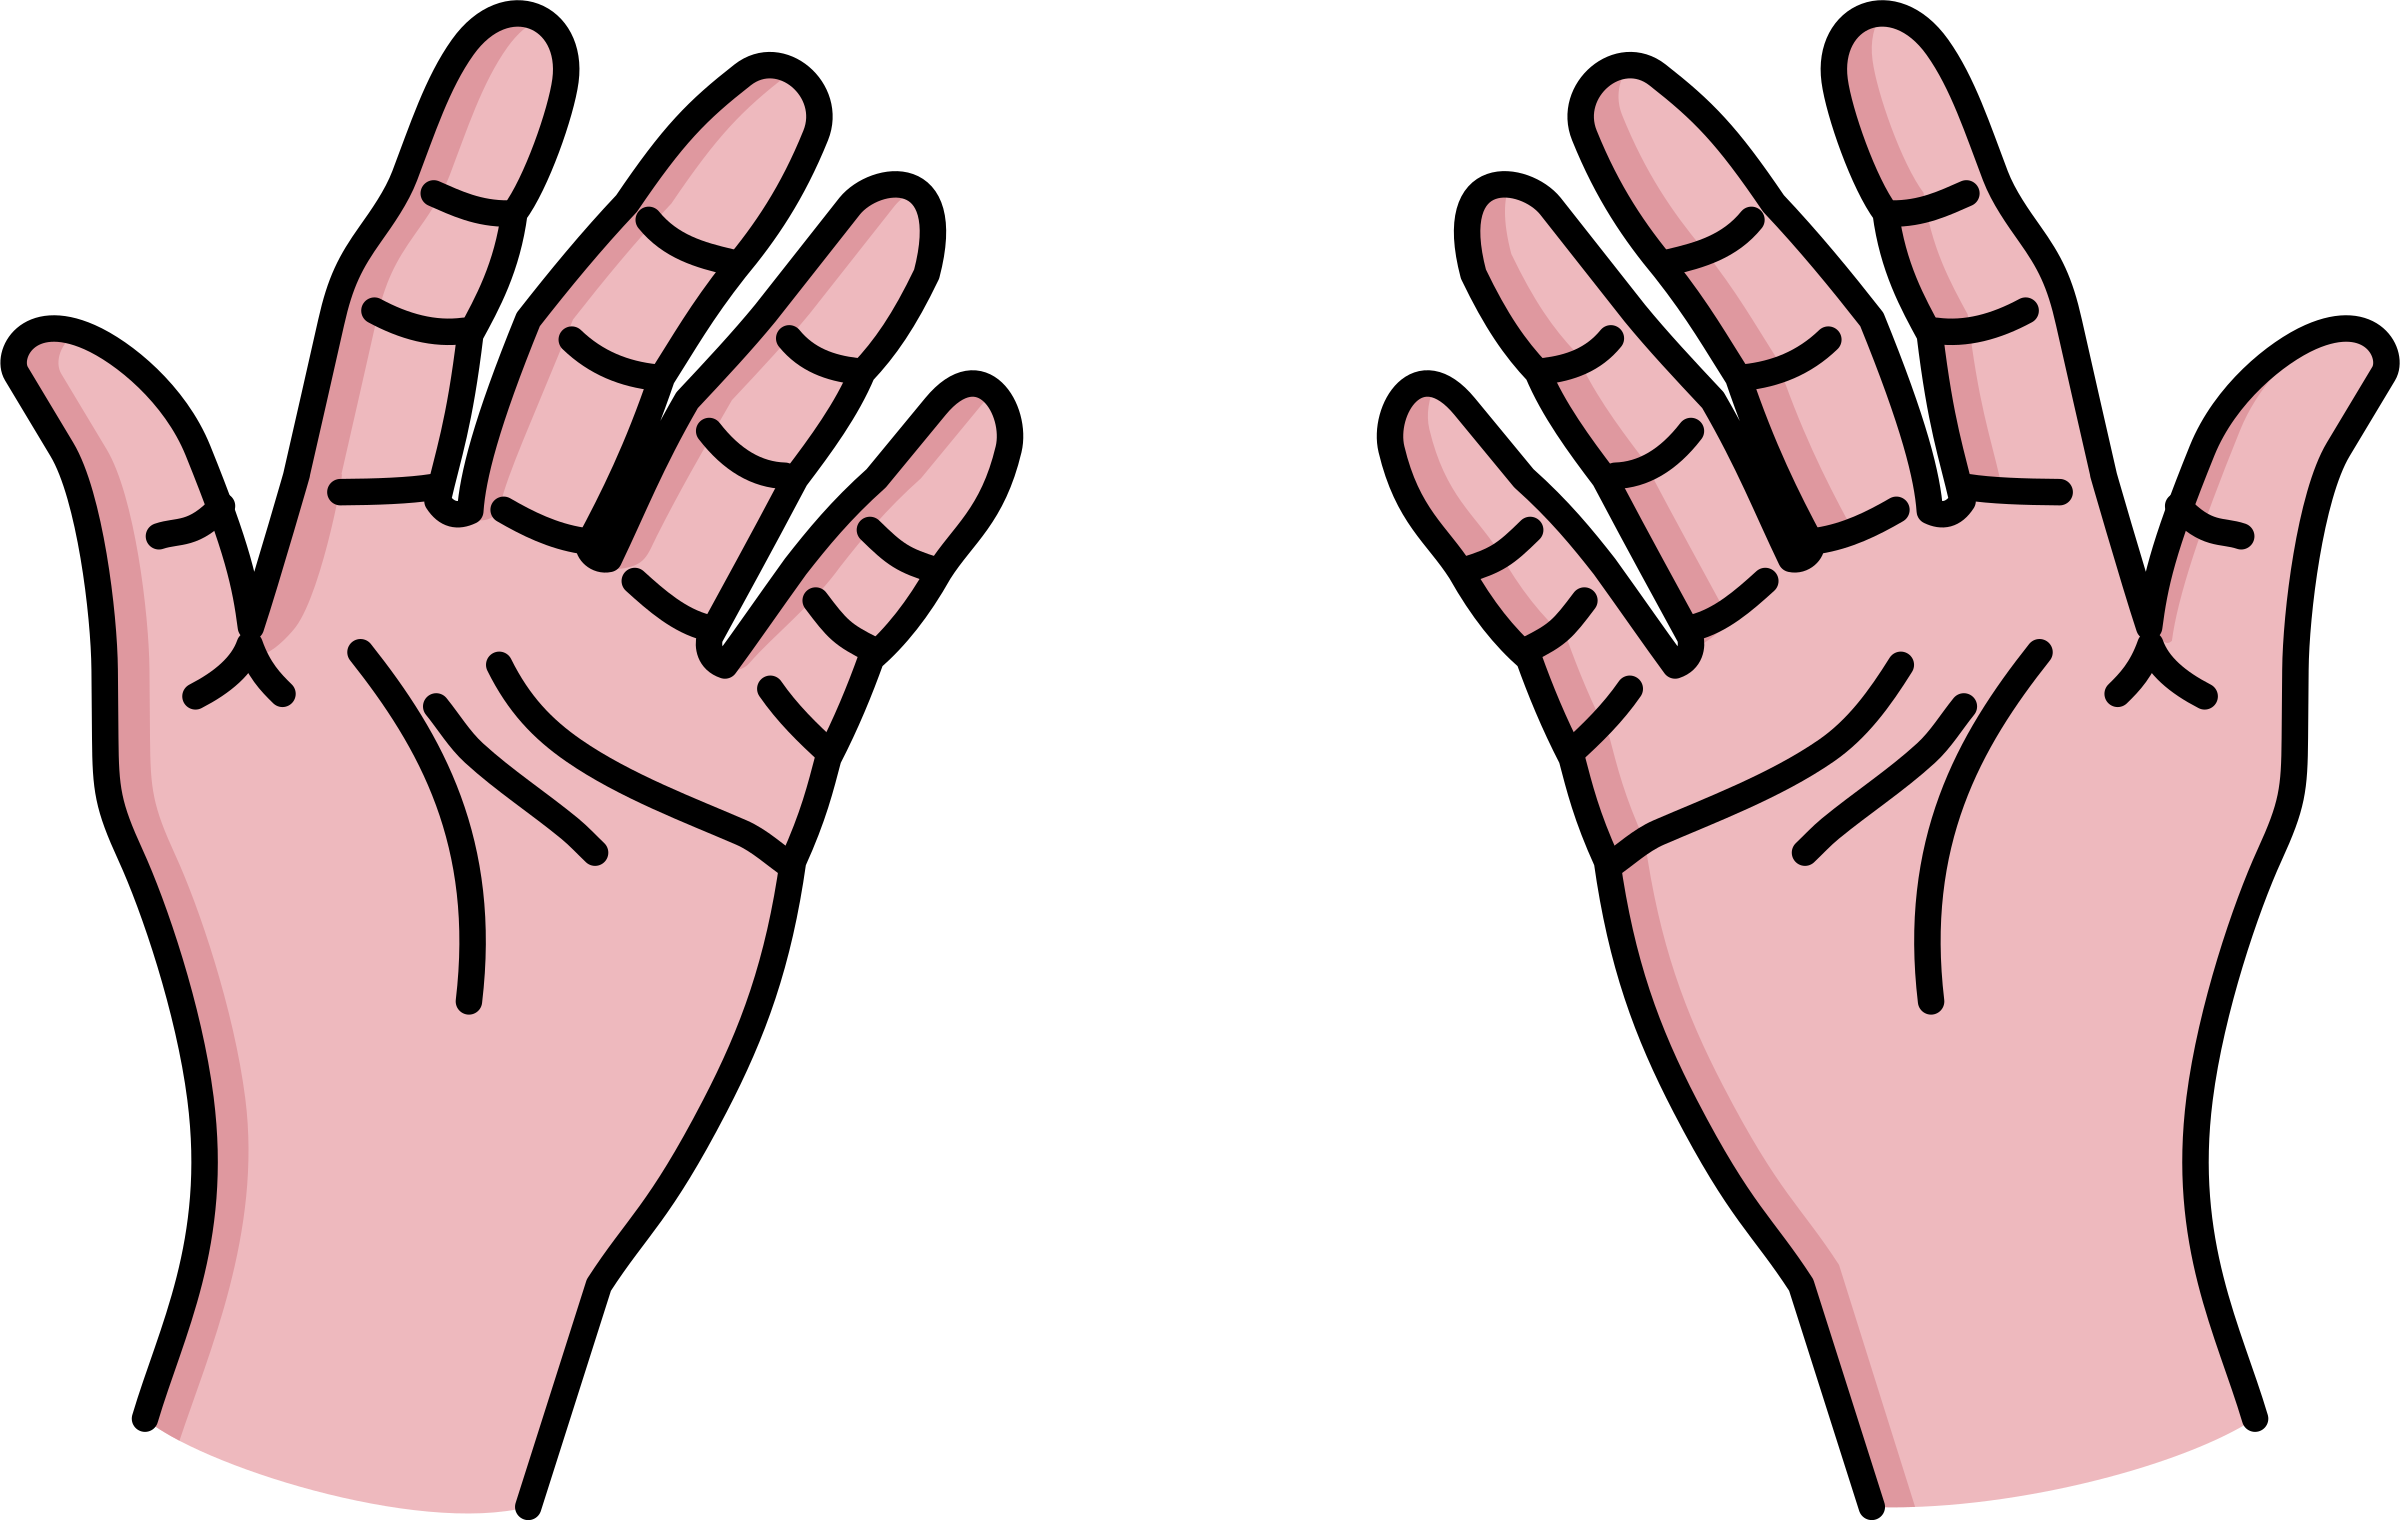 The Hands On The Clipart